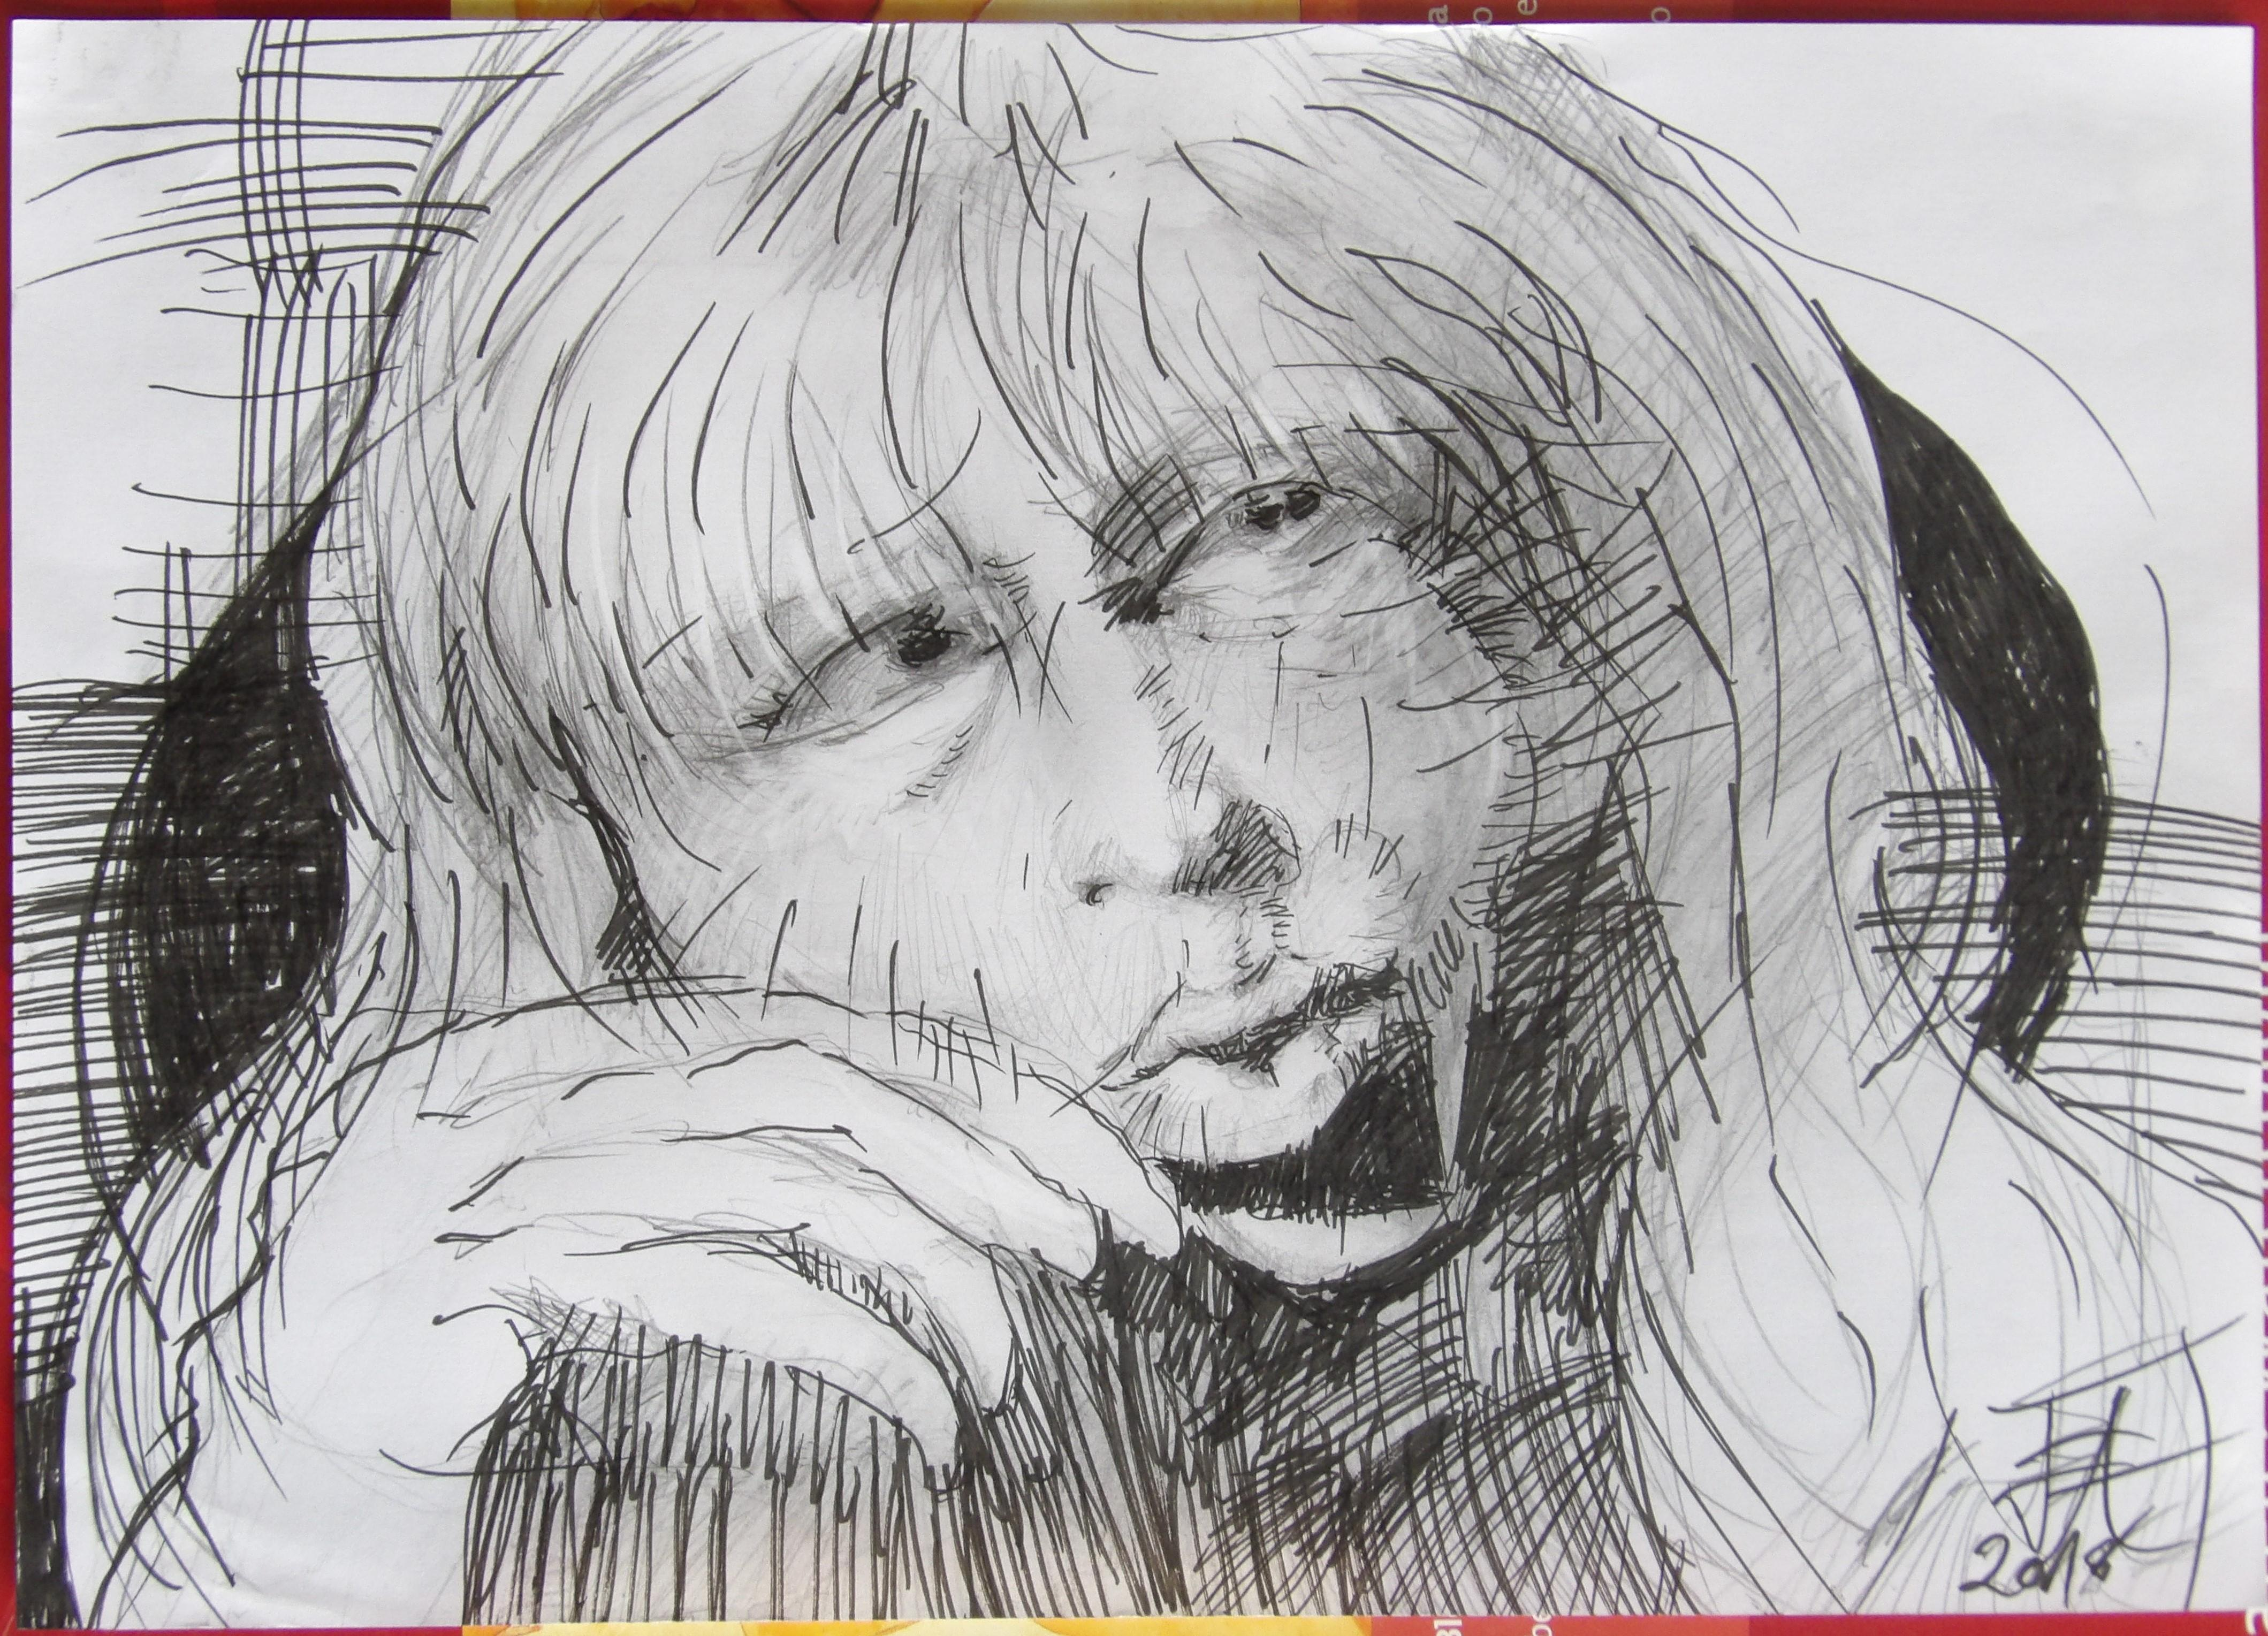 Dessins d'après les screen test d'Andy Warhol  shot between 1963 and 1966 -6 -Nico (1) - 2018